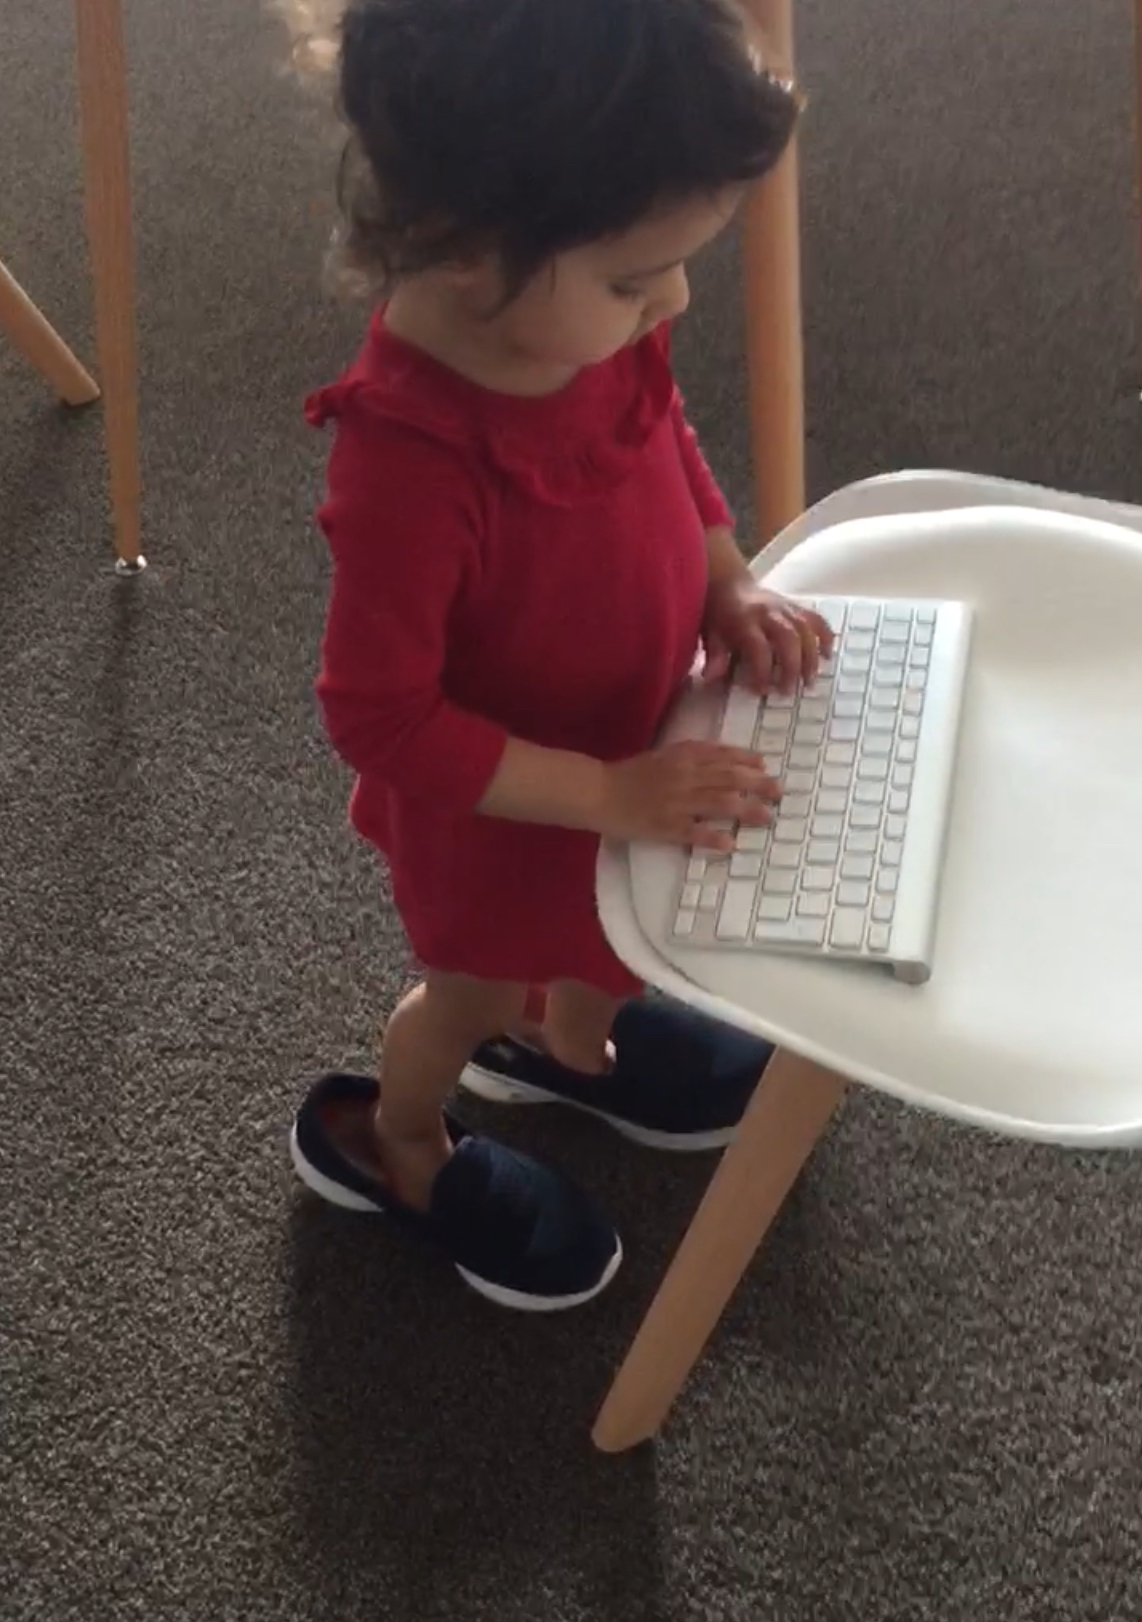 typing while wearing big shoes